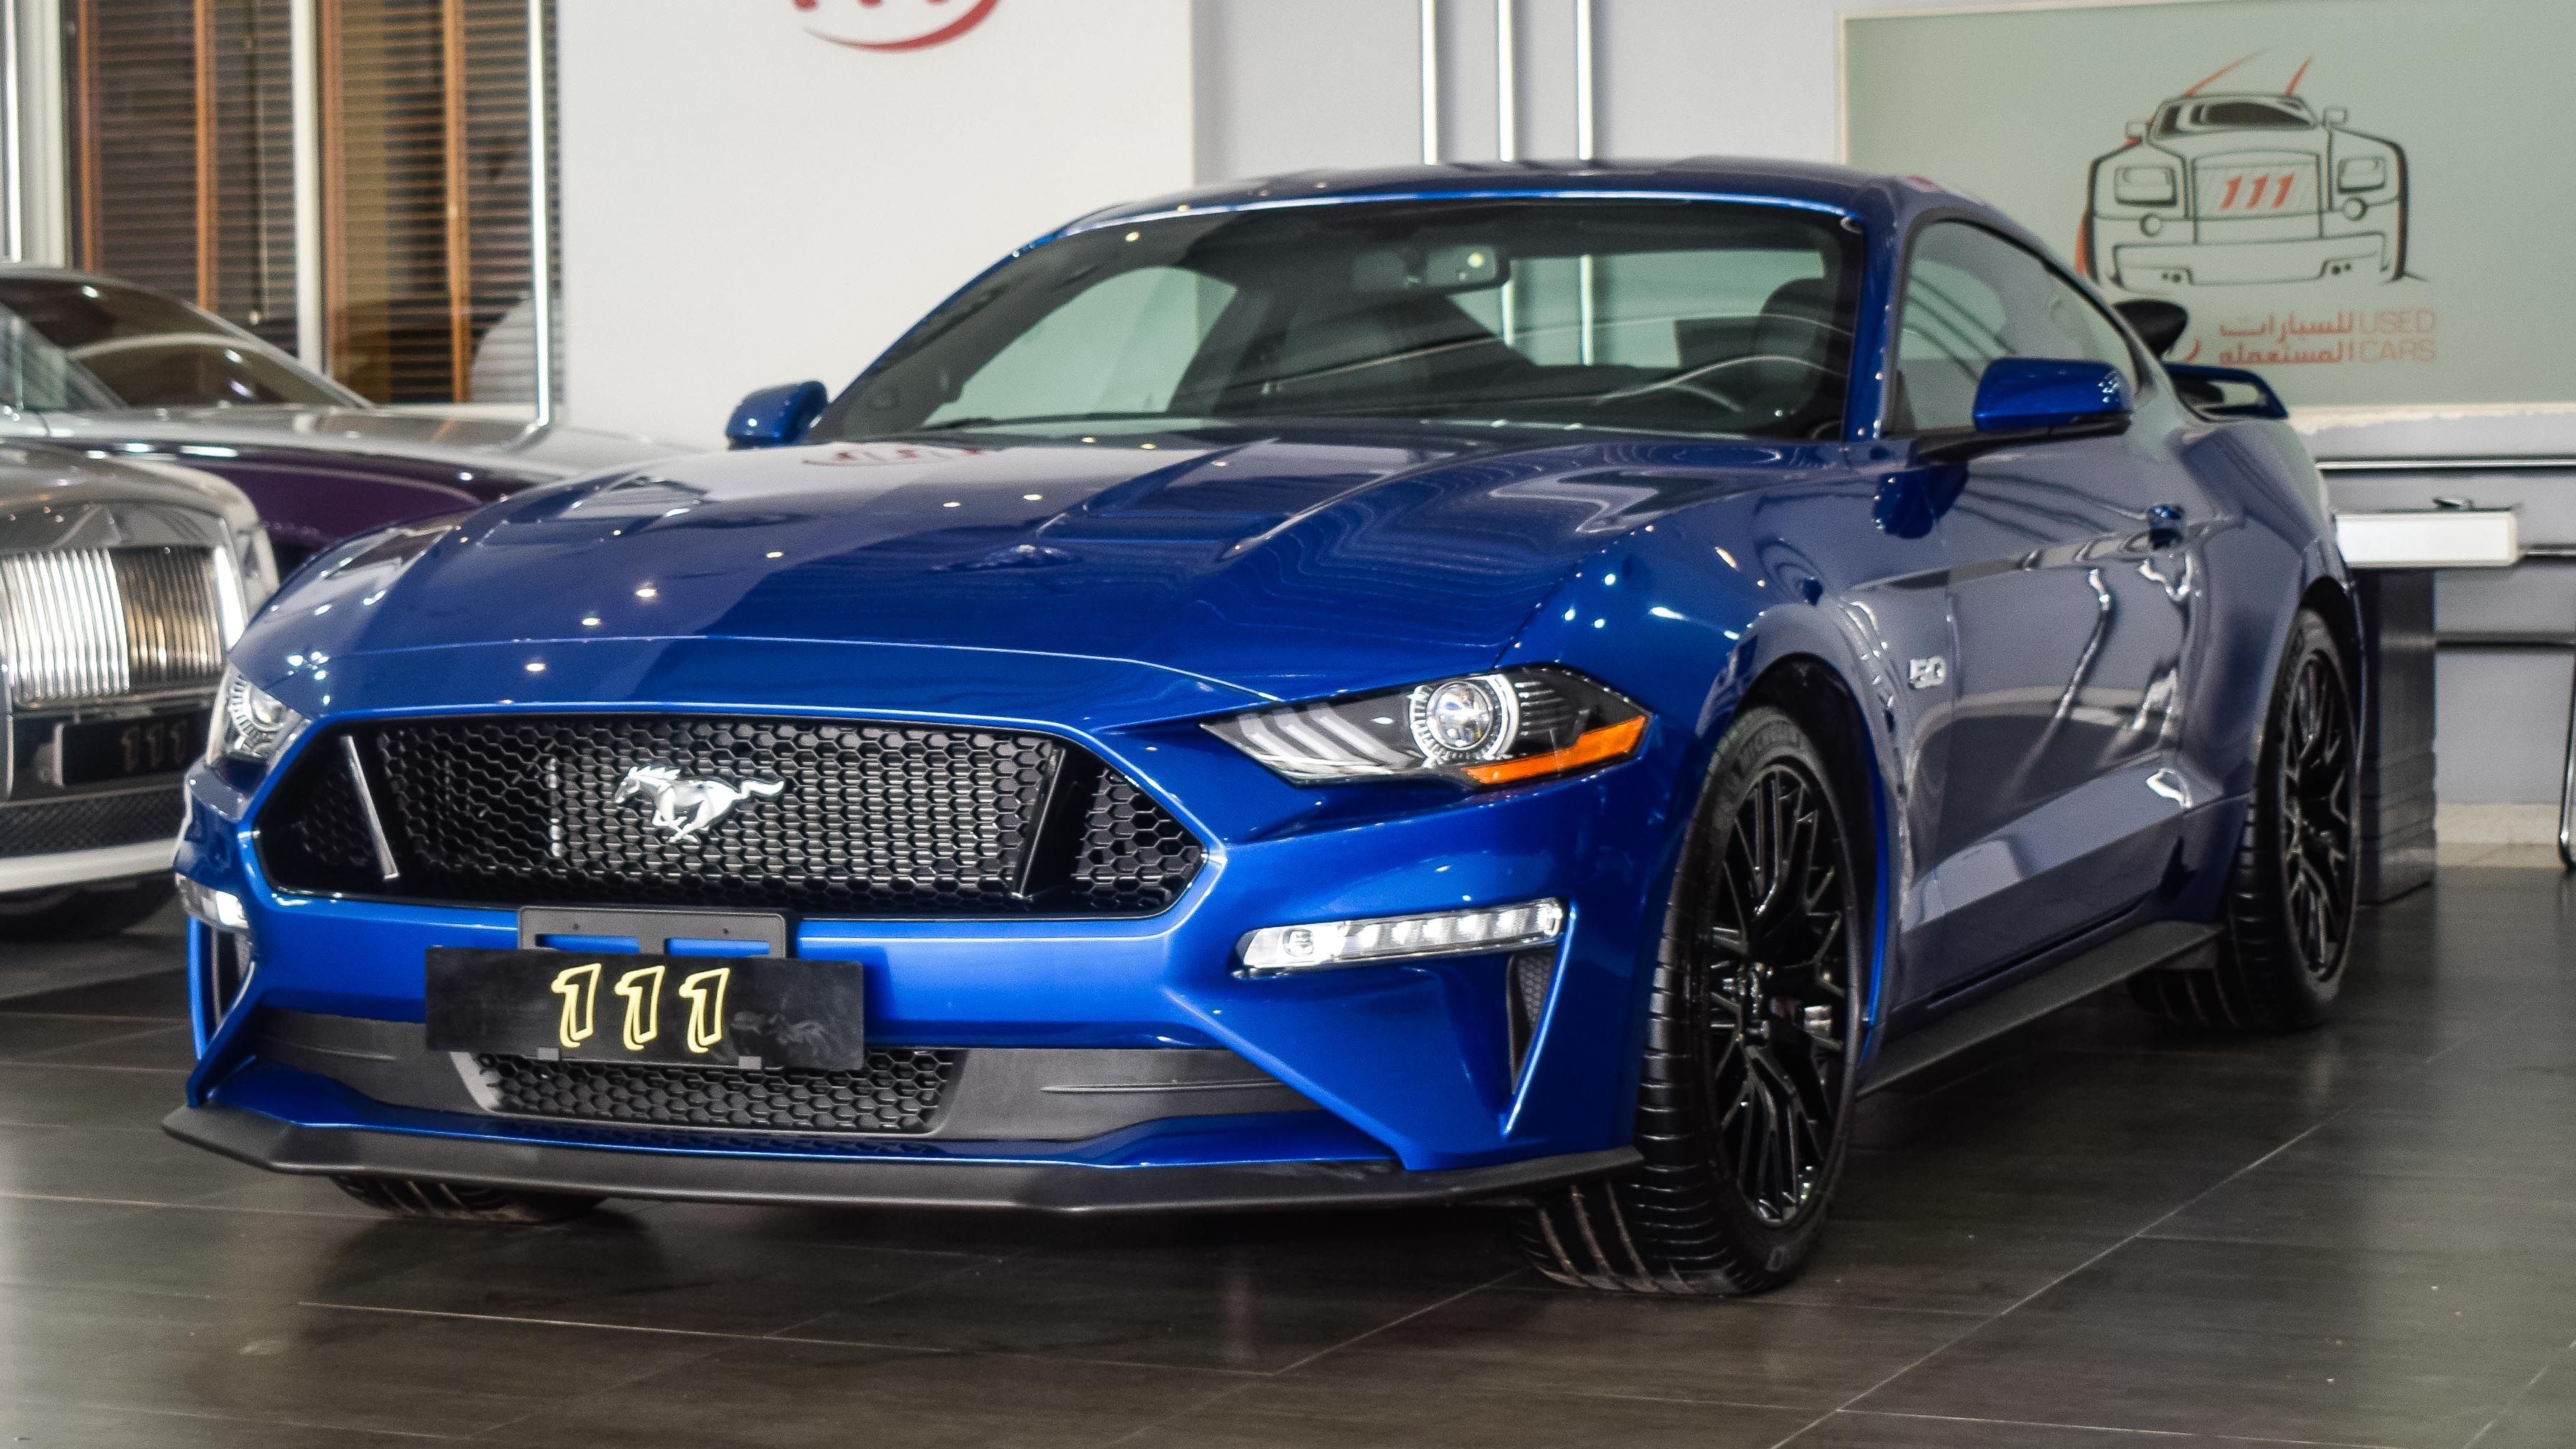 Model Ford Mustang Gt Premium 5 0 V8 Year 2018 Km 3 000 Price